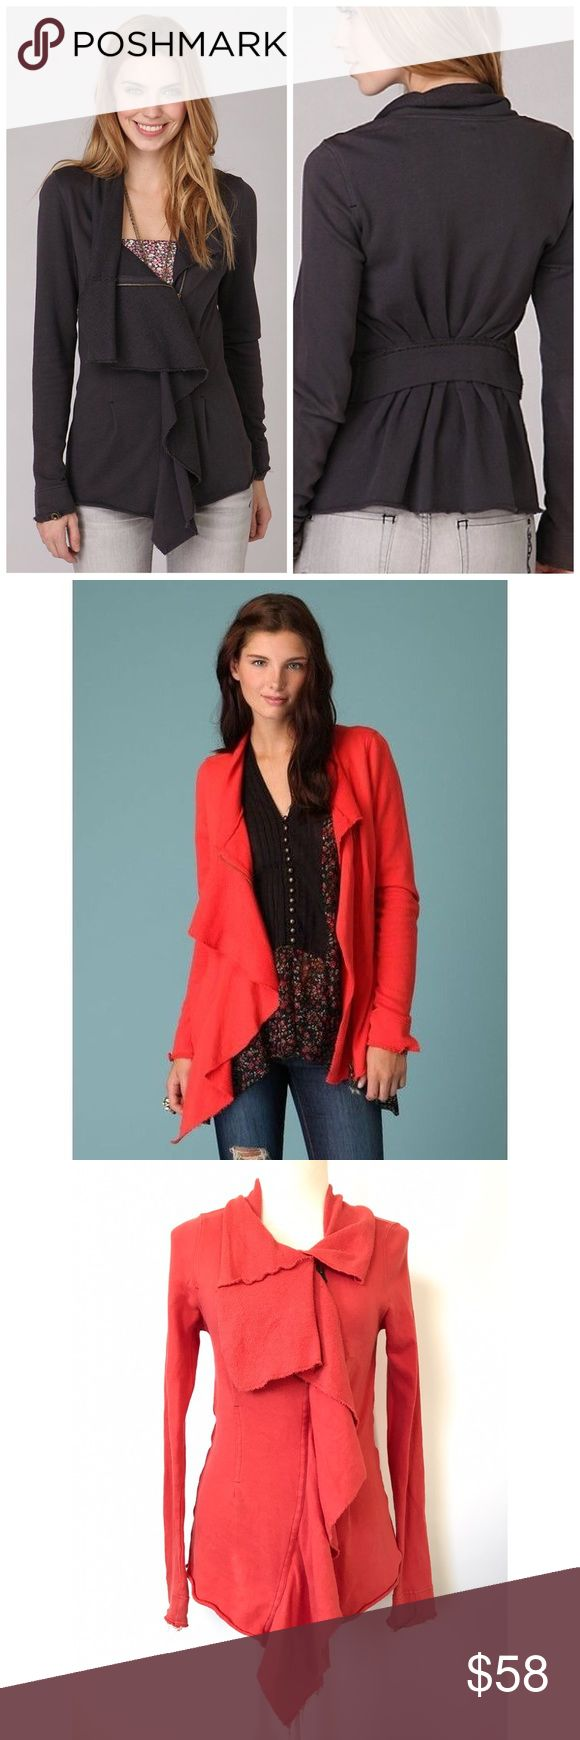 """Free People Pacific Coast Jacket Orange Small L1 Bust: 17.5"""" Length: 32""""-25""""  Raw edges; Ruffled detail on the front with asymmetrical zipper closure; fold over collar and button tabs on the cuffs; band across the back with pleaded bottom  Condition: No Rips; Small stain on the right sleeve (please see pictures for more details)  100% Cotton   📦Orders are shipped within 24hrs! {Except weekends}📦  🚫No Trades🚫No Holds🚫 Free People Jackets & Coats"""